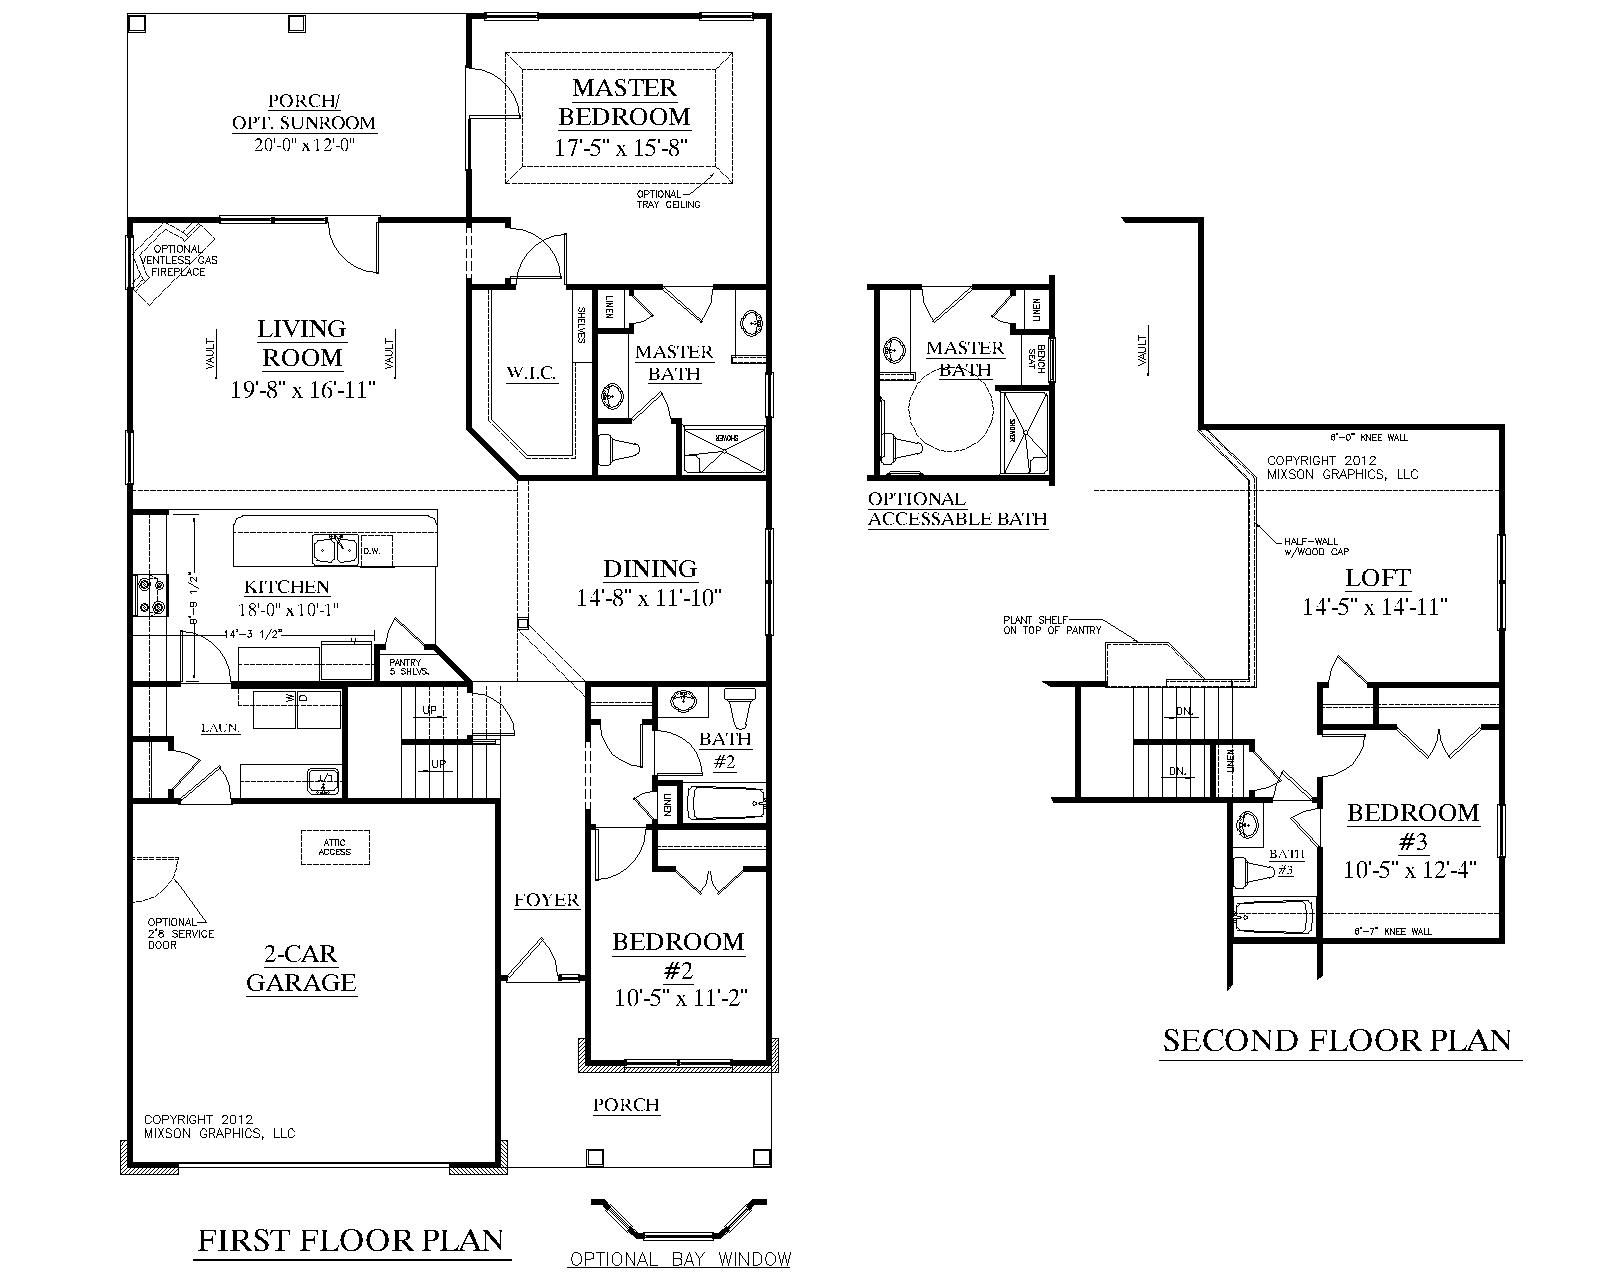 House plan 2224 kingstree floor plan traditional 1 1 2 for 3 bedroom 1 story house plans